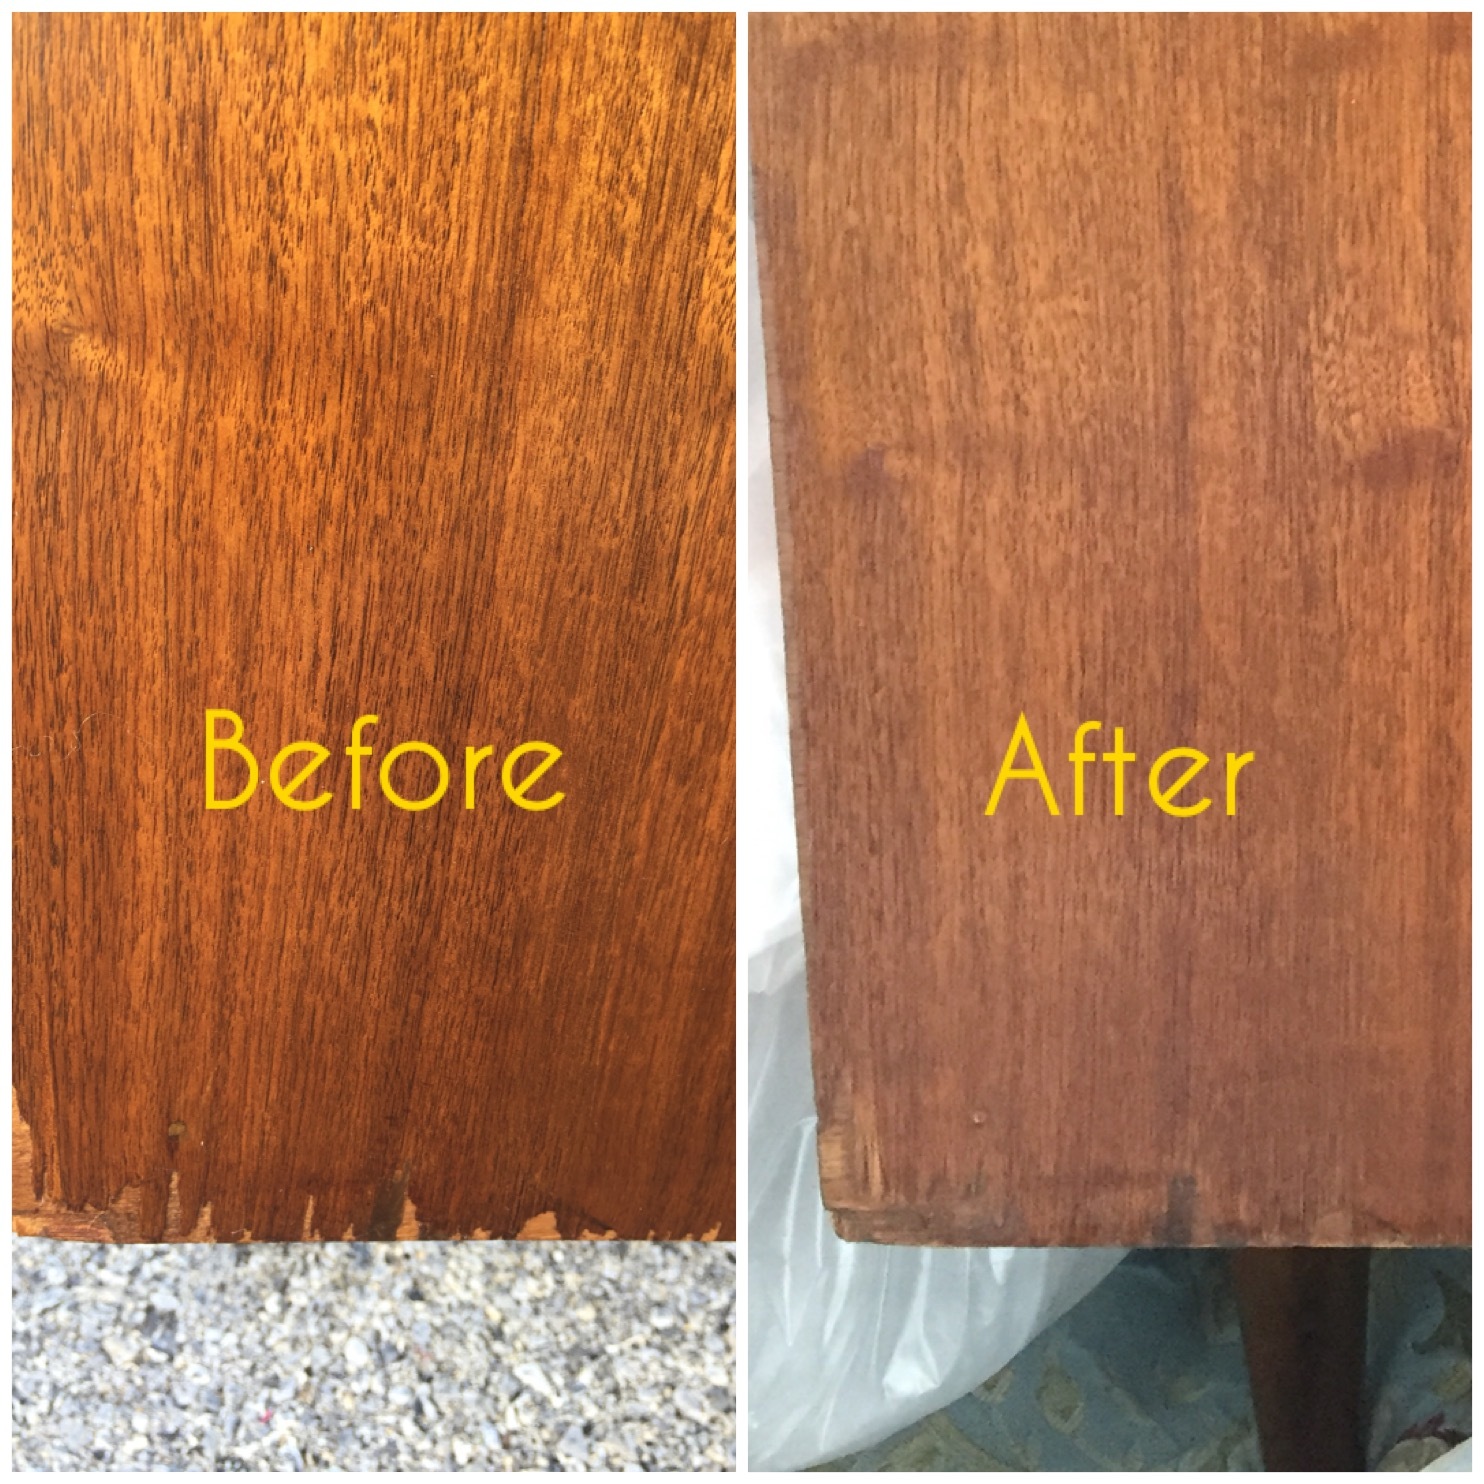 Adding some stain to darken the area and then adding a clear coat to protect and seal helped this area blend in.